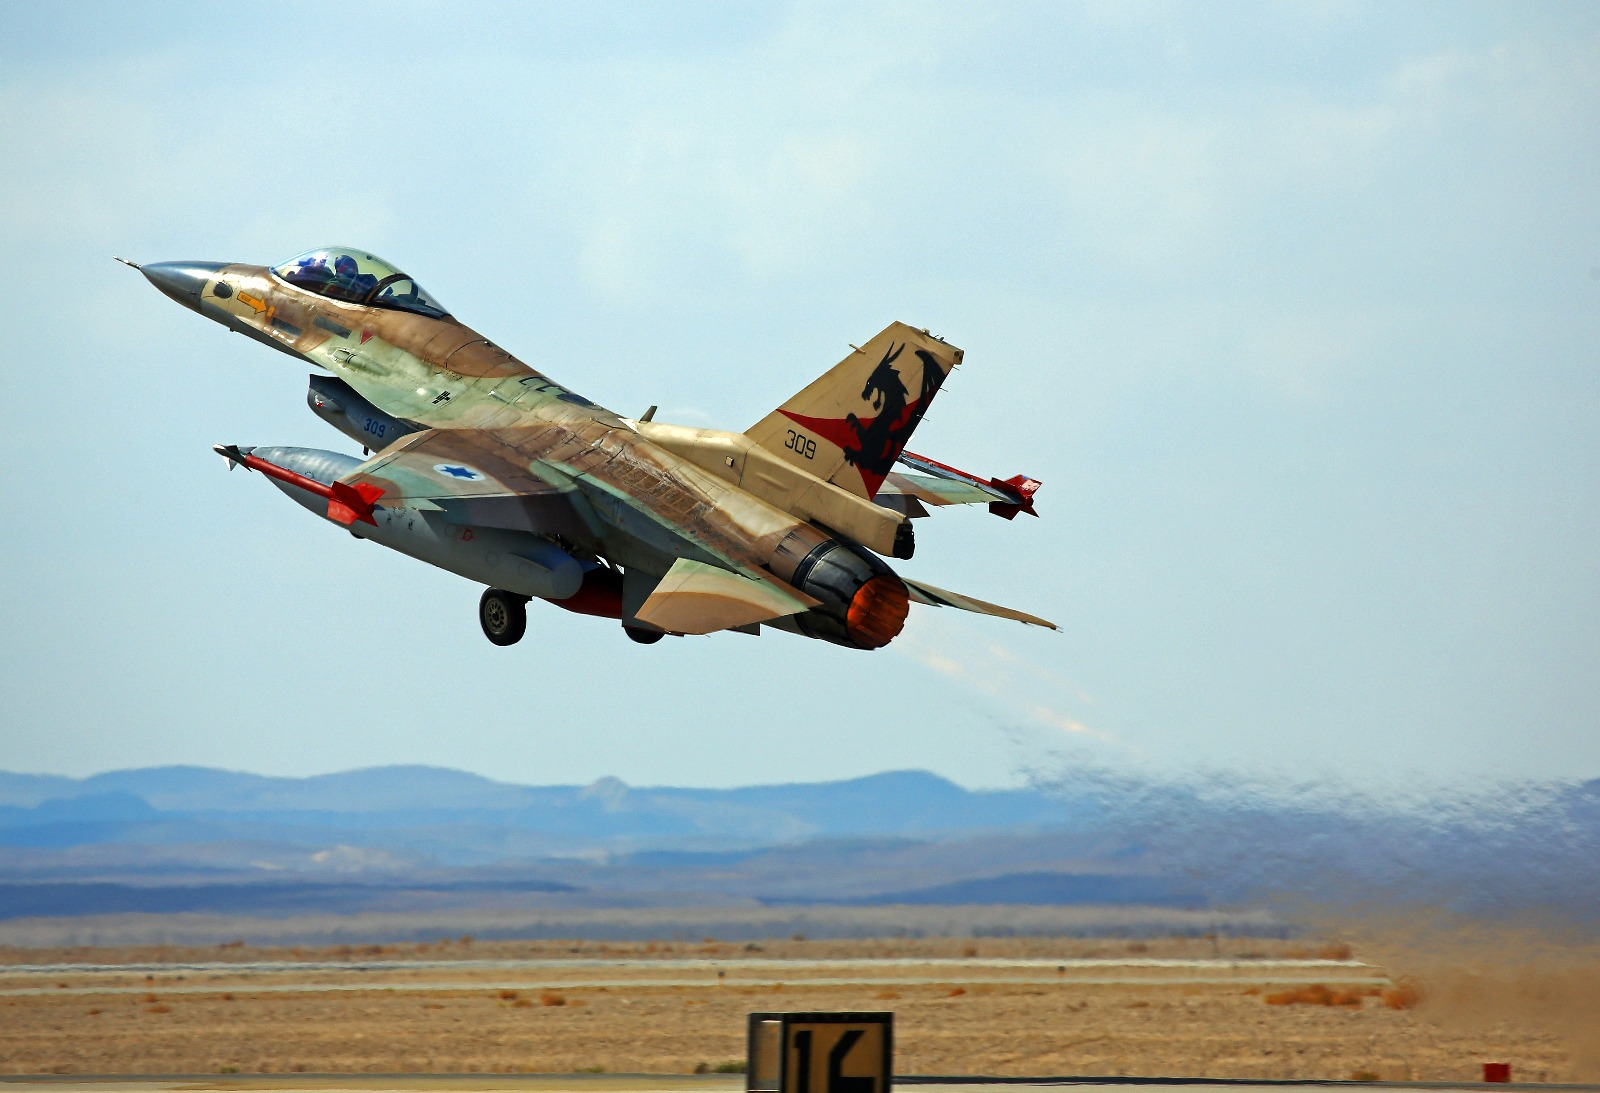 Israel, 8 other states hold large air force maneuvers